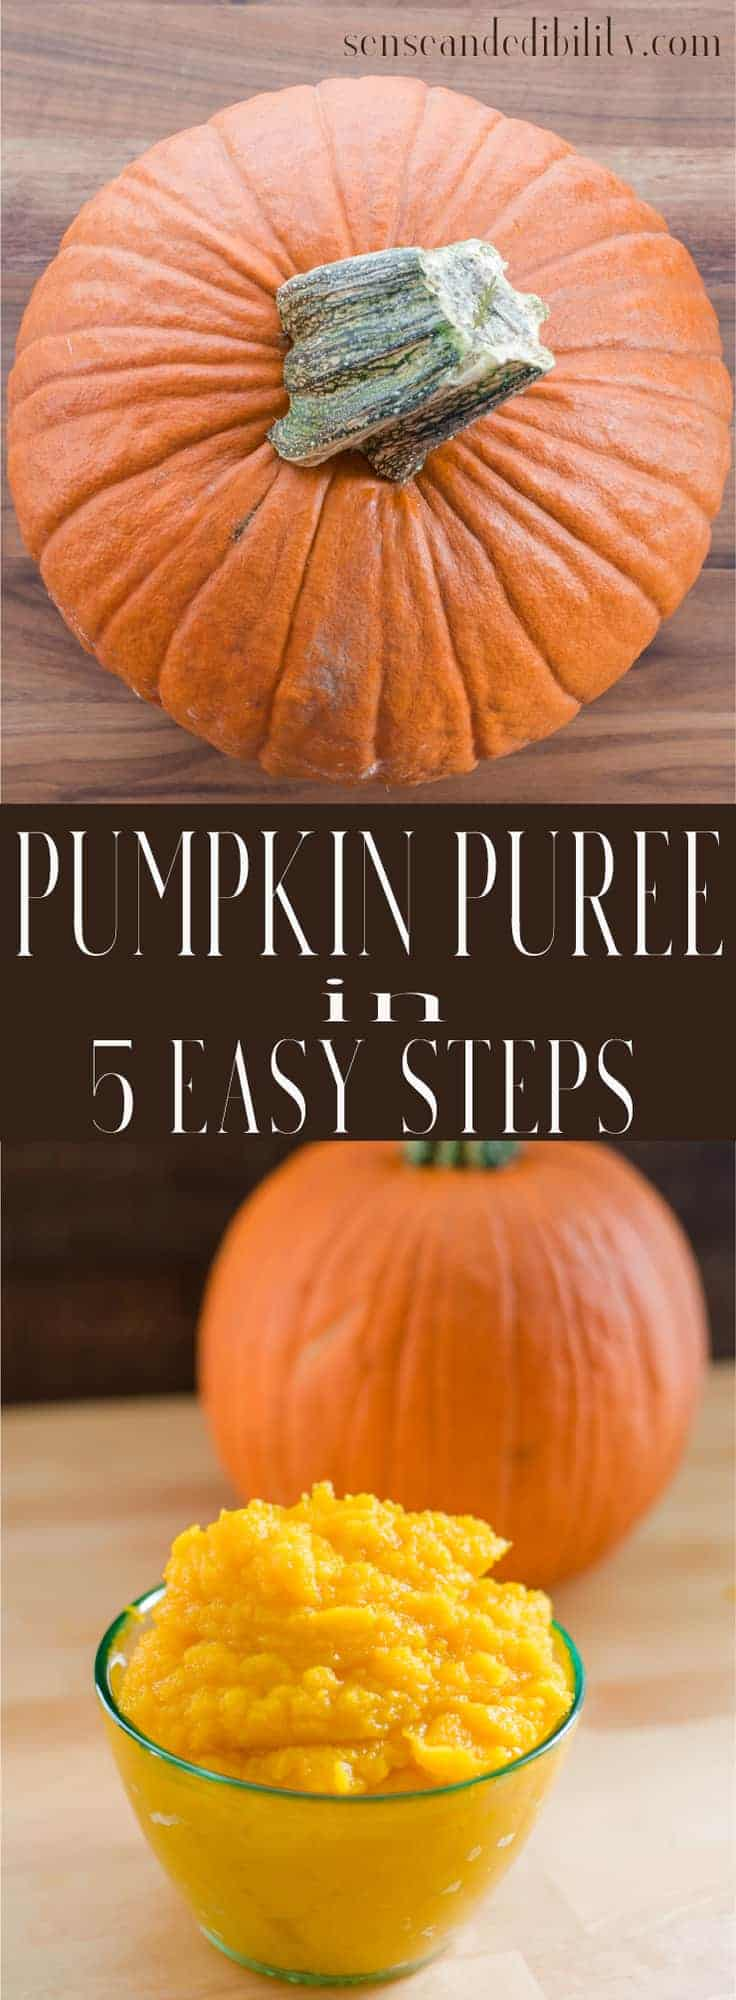 Sense & Edibility's Pureed Pumpkin in 5 Easy Steps Pin